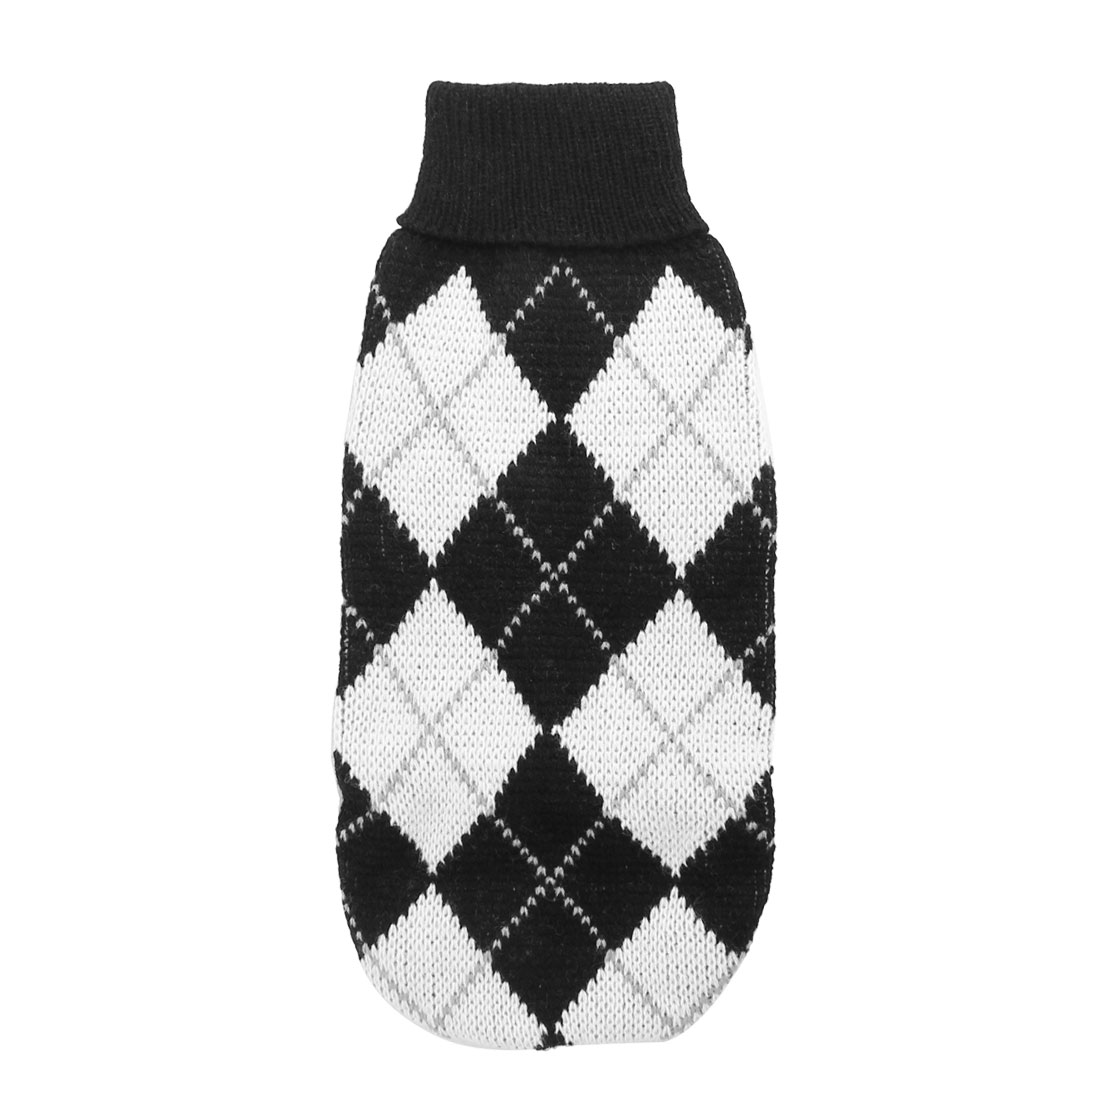 Unique Bargains Turtleneck Rhombus Pattern Pet Dog Yorkie Cat Apparel Sweater Black White S